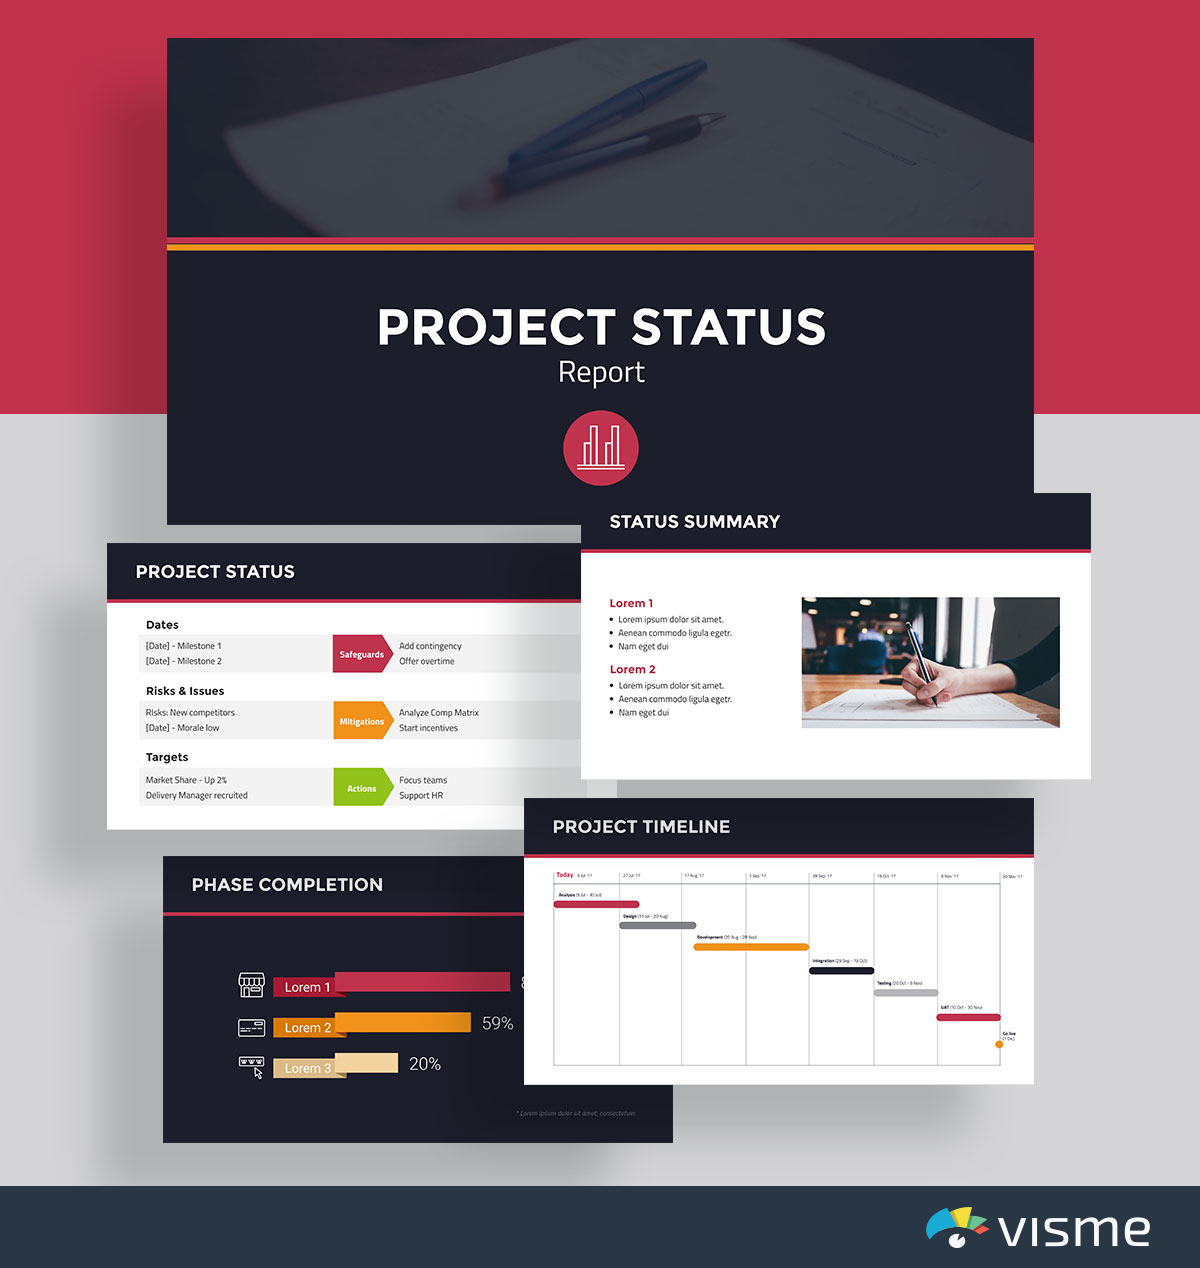 presentation slides - project status template visme